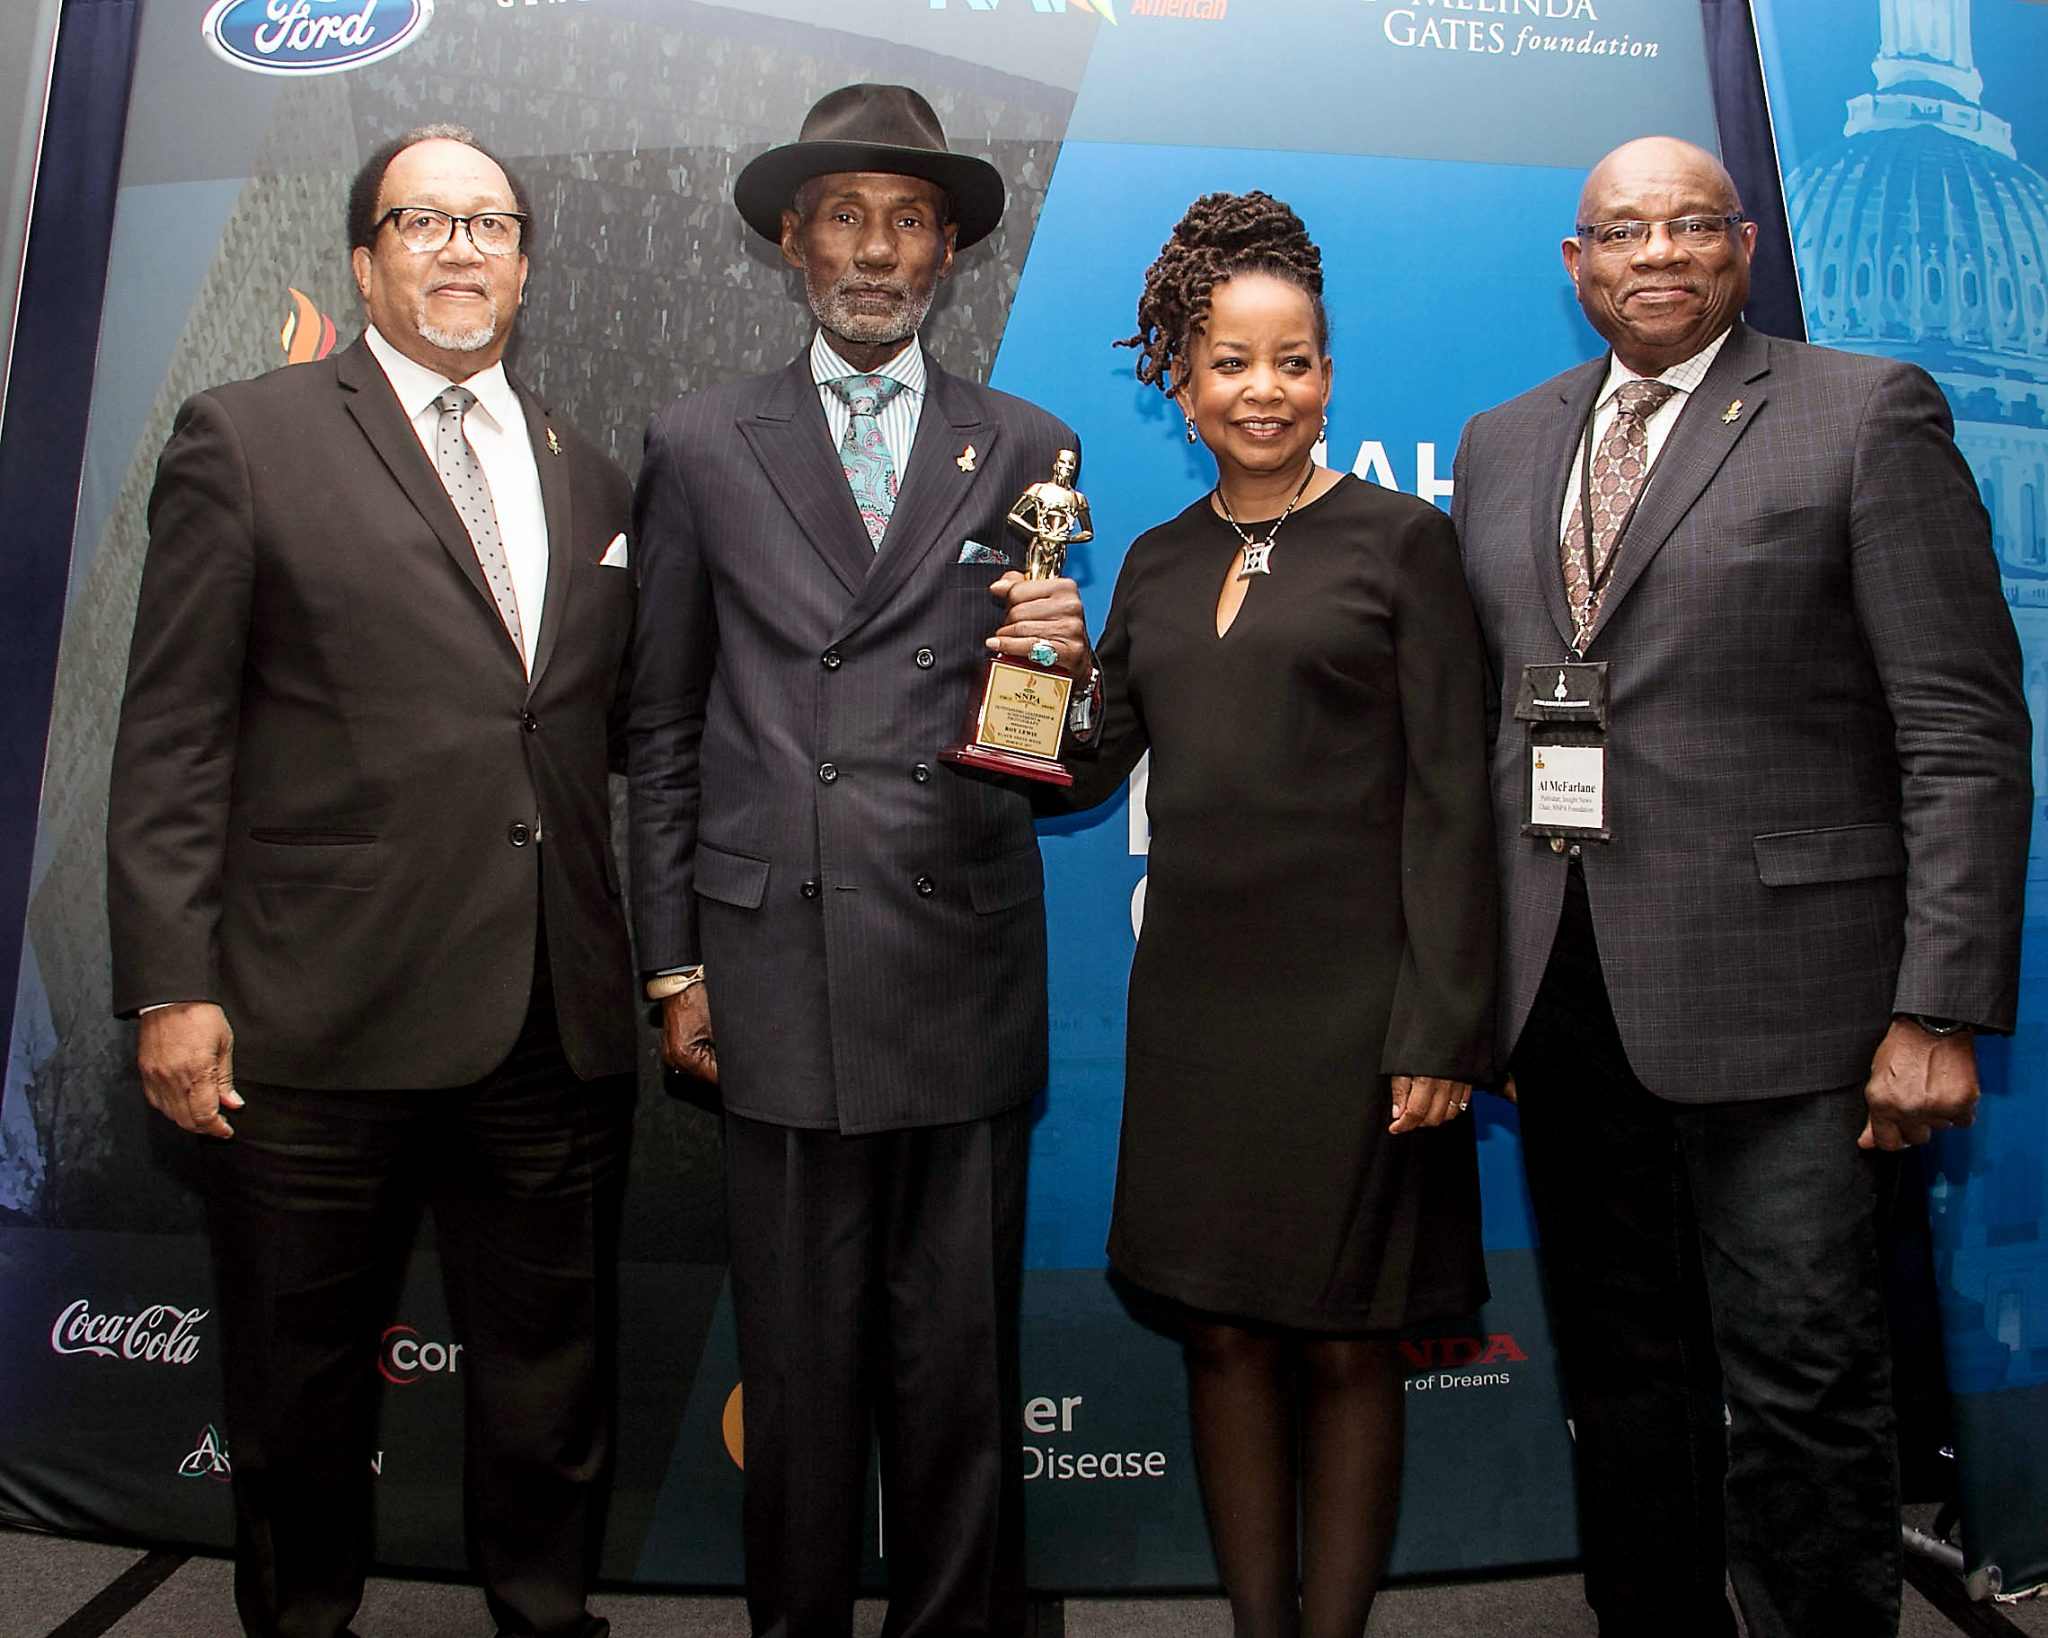 Officers for the National Newspaper Publishers Association present Roy Lewis (second from left) with a Torch Award for his outstanding achievement during Black Press Week at the Dupont Circle Hotel in northwest D.C. on March 23. (Shevry Lassiter/The Washington Informer)